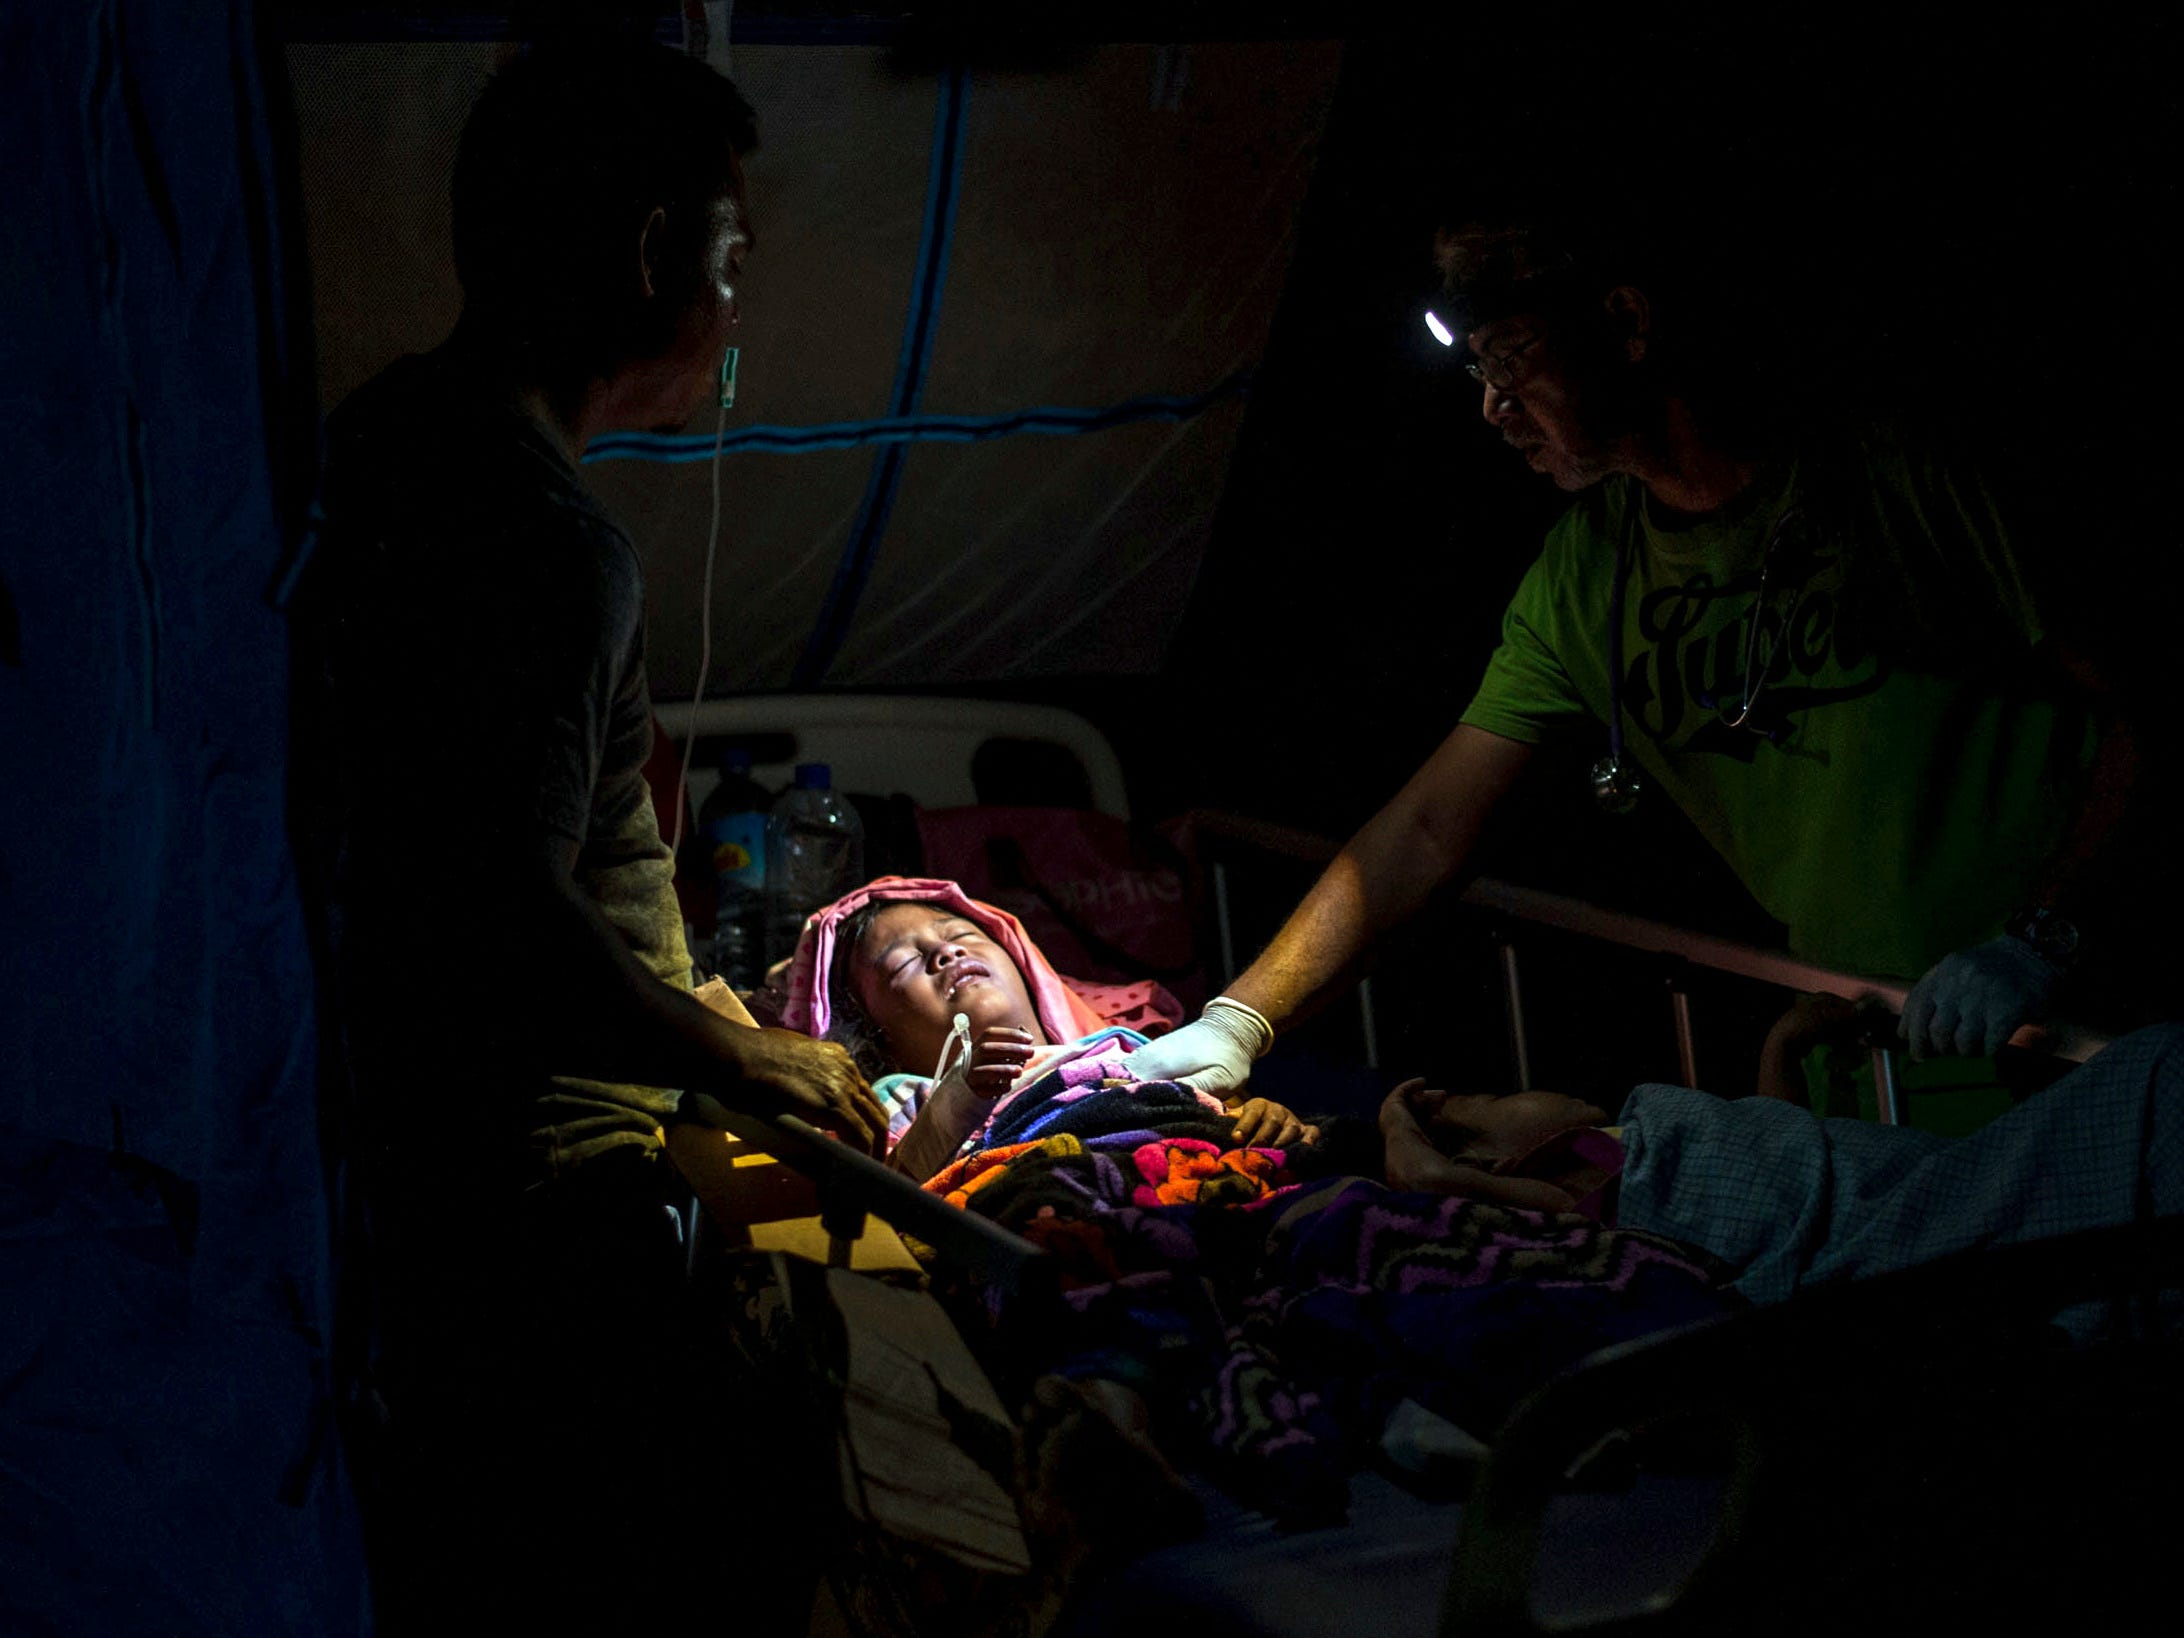 A doctor examines a child injured in the earthquake at a makeshift hospital in Tanjung on Lombok Island, Indonesia, on Aug. 6, 2018. The powerful earthquake flattened houses and toppled bridges on the Indonesian tourist island of Lombok, killing a large number of people and shaking neighboring Bali, as authorities said that rescuers still hadn't reached some devastated areas and the death toll would climb.